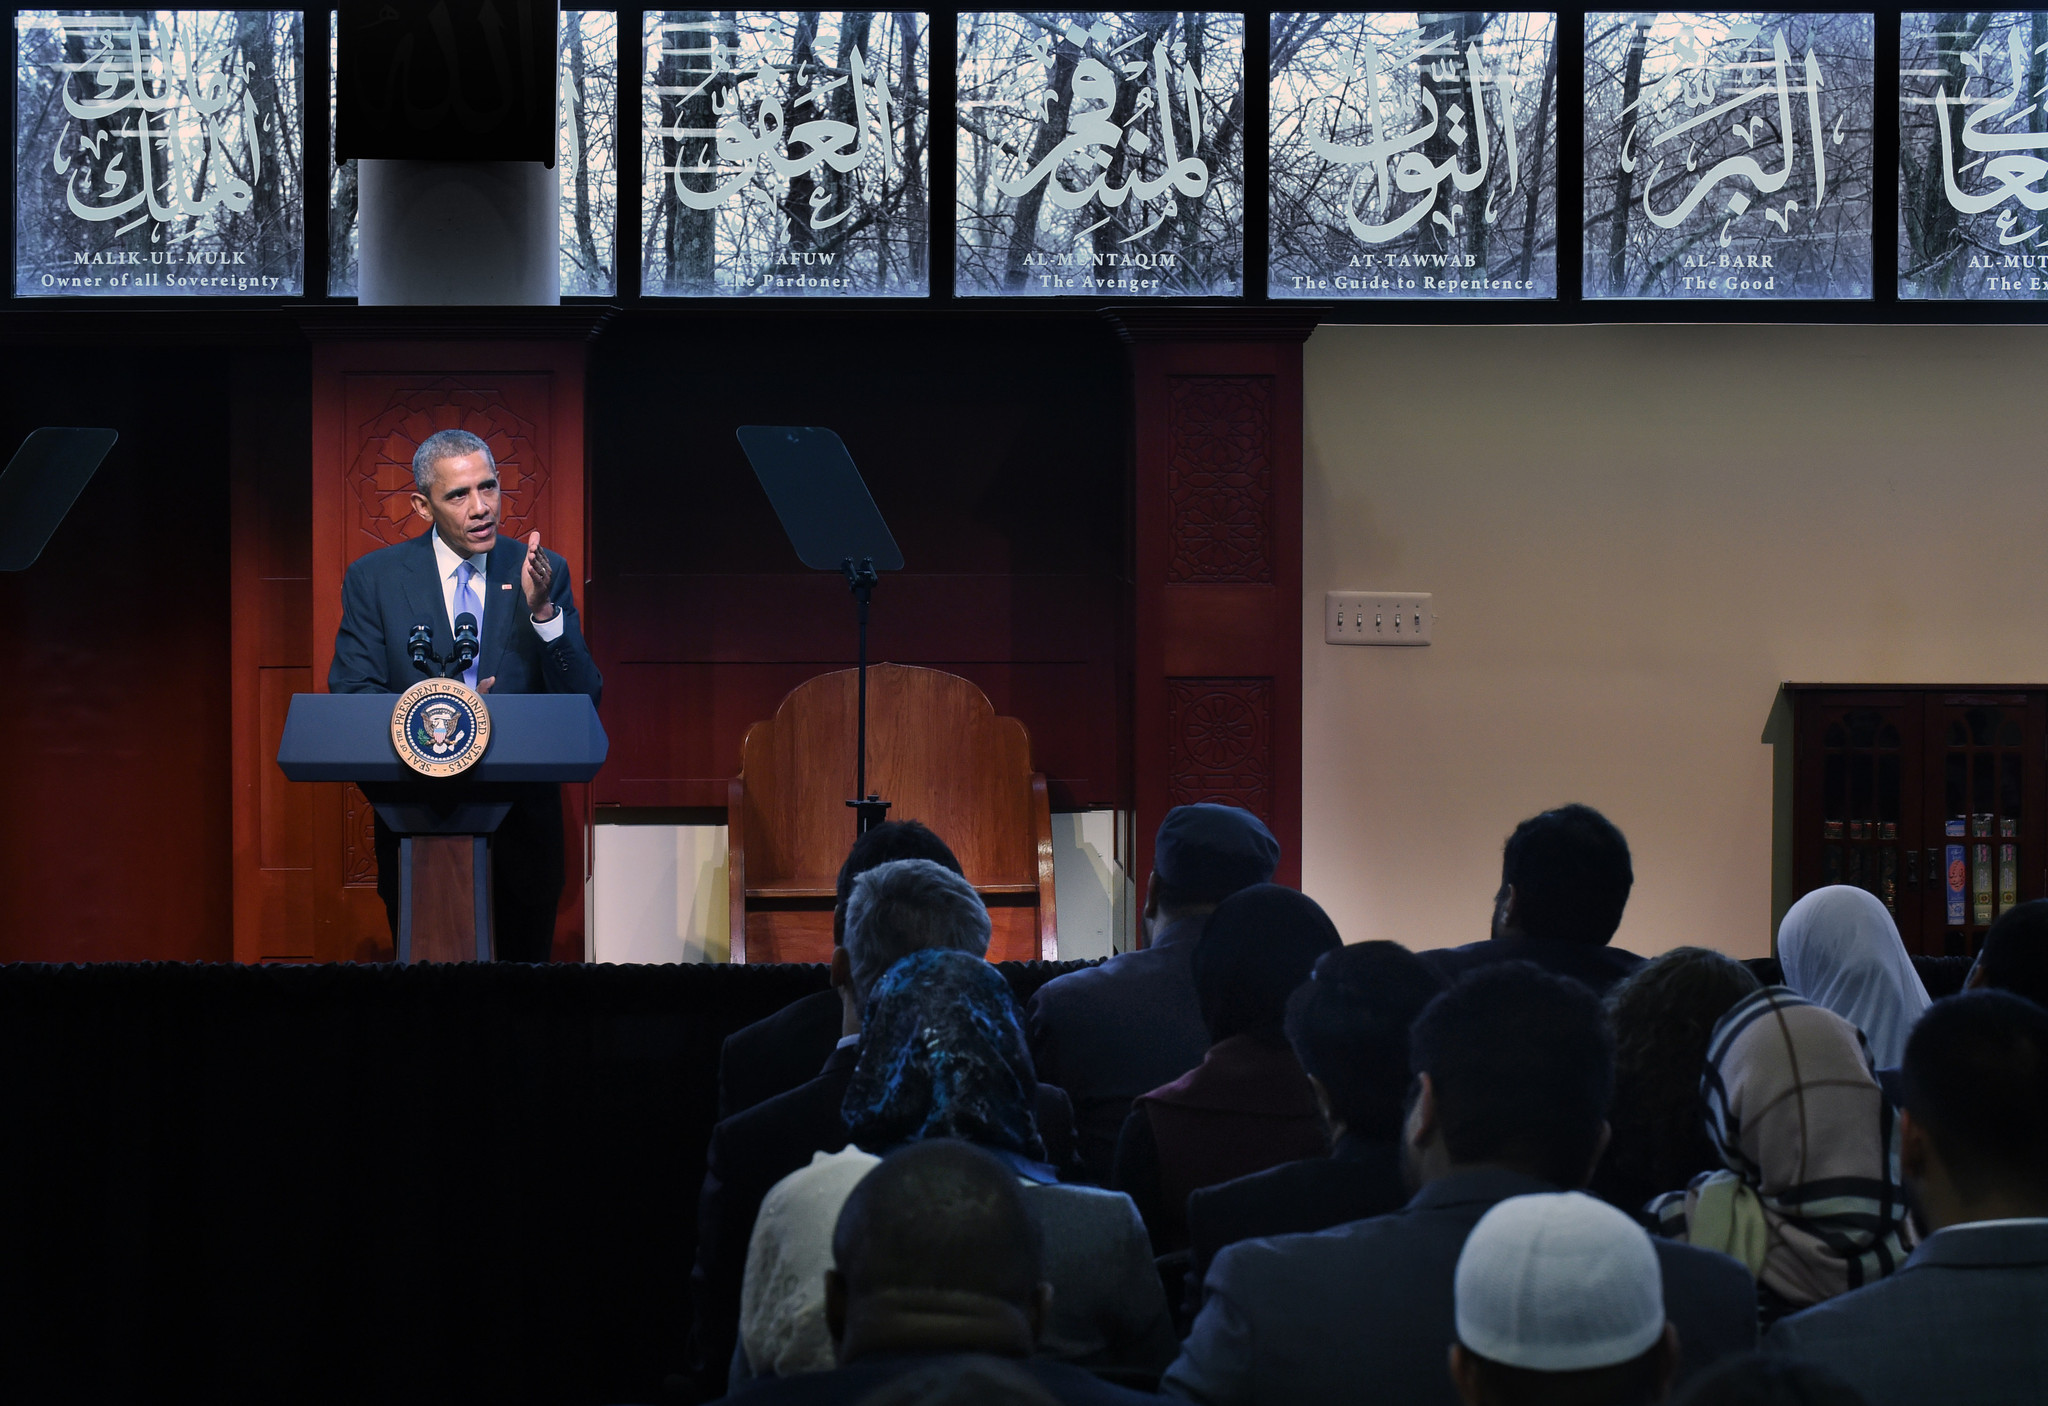 President obamas remarks at the islamic society of baltimore president obamas remarks at the islamic society of baltimore baltimore sun kristyandbryce Images